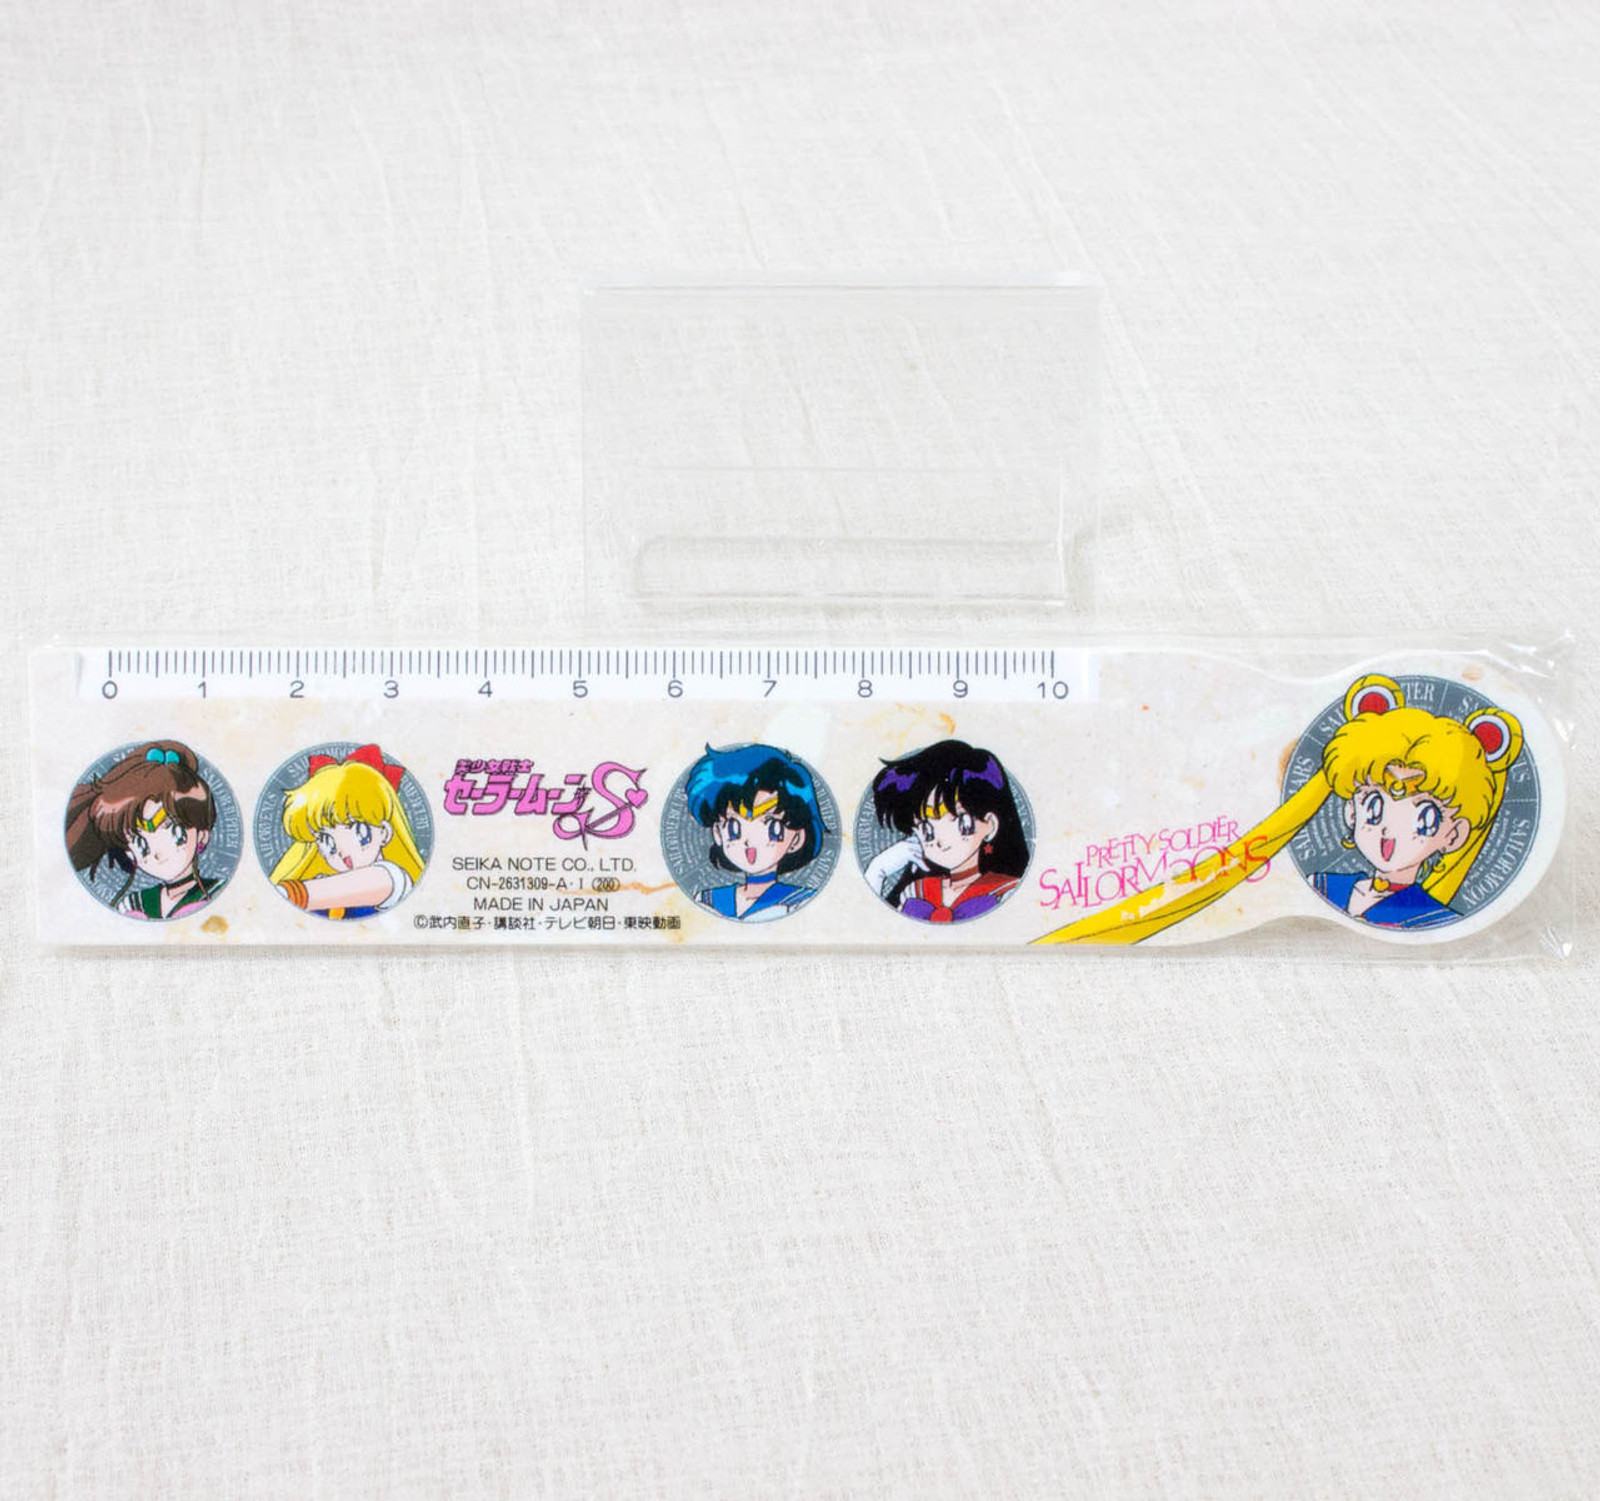 Retro RARE! Sailor Moon S Ruler 15cm SEIKA NOTE JAPAN ANIME MANGA